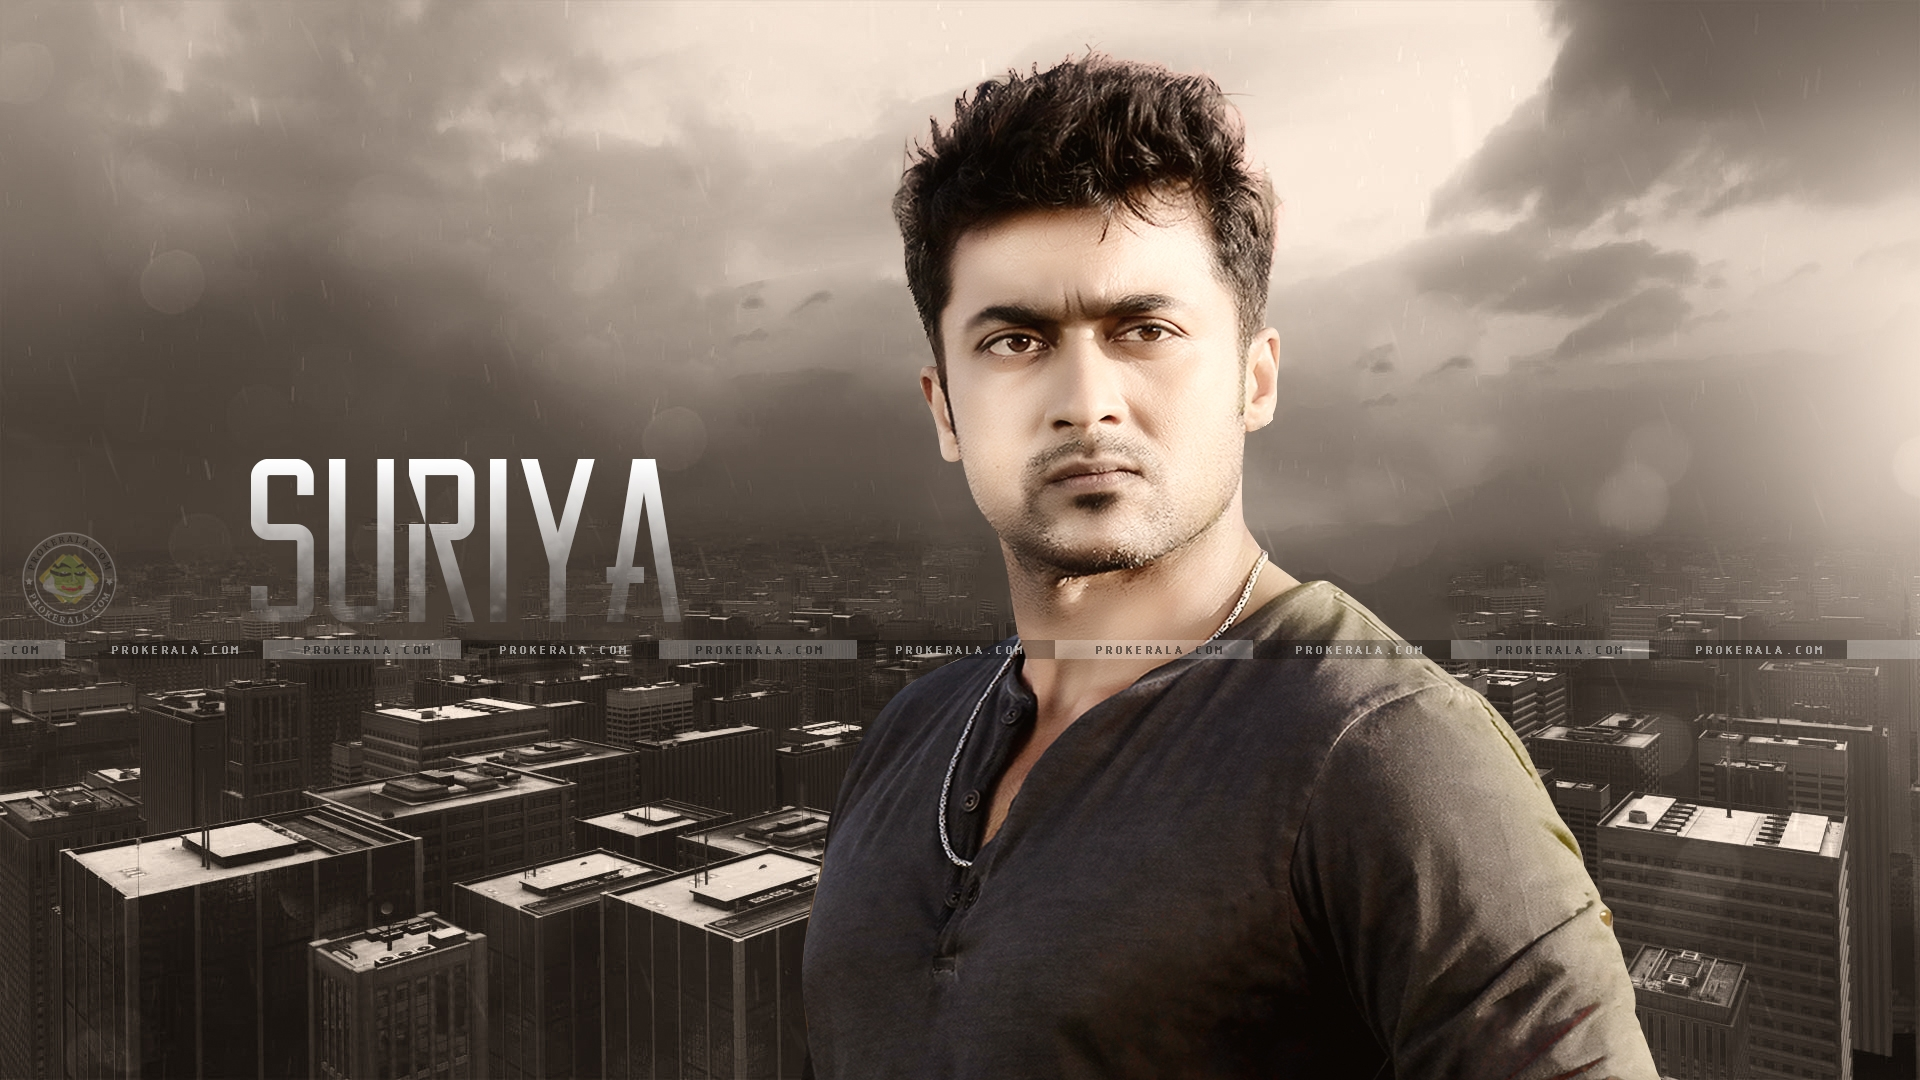 Suriya mobile wallpapers desktop wallpapers free download 1 2 more celebrity wallpapers thecheapjerseys Choice Image